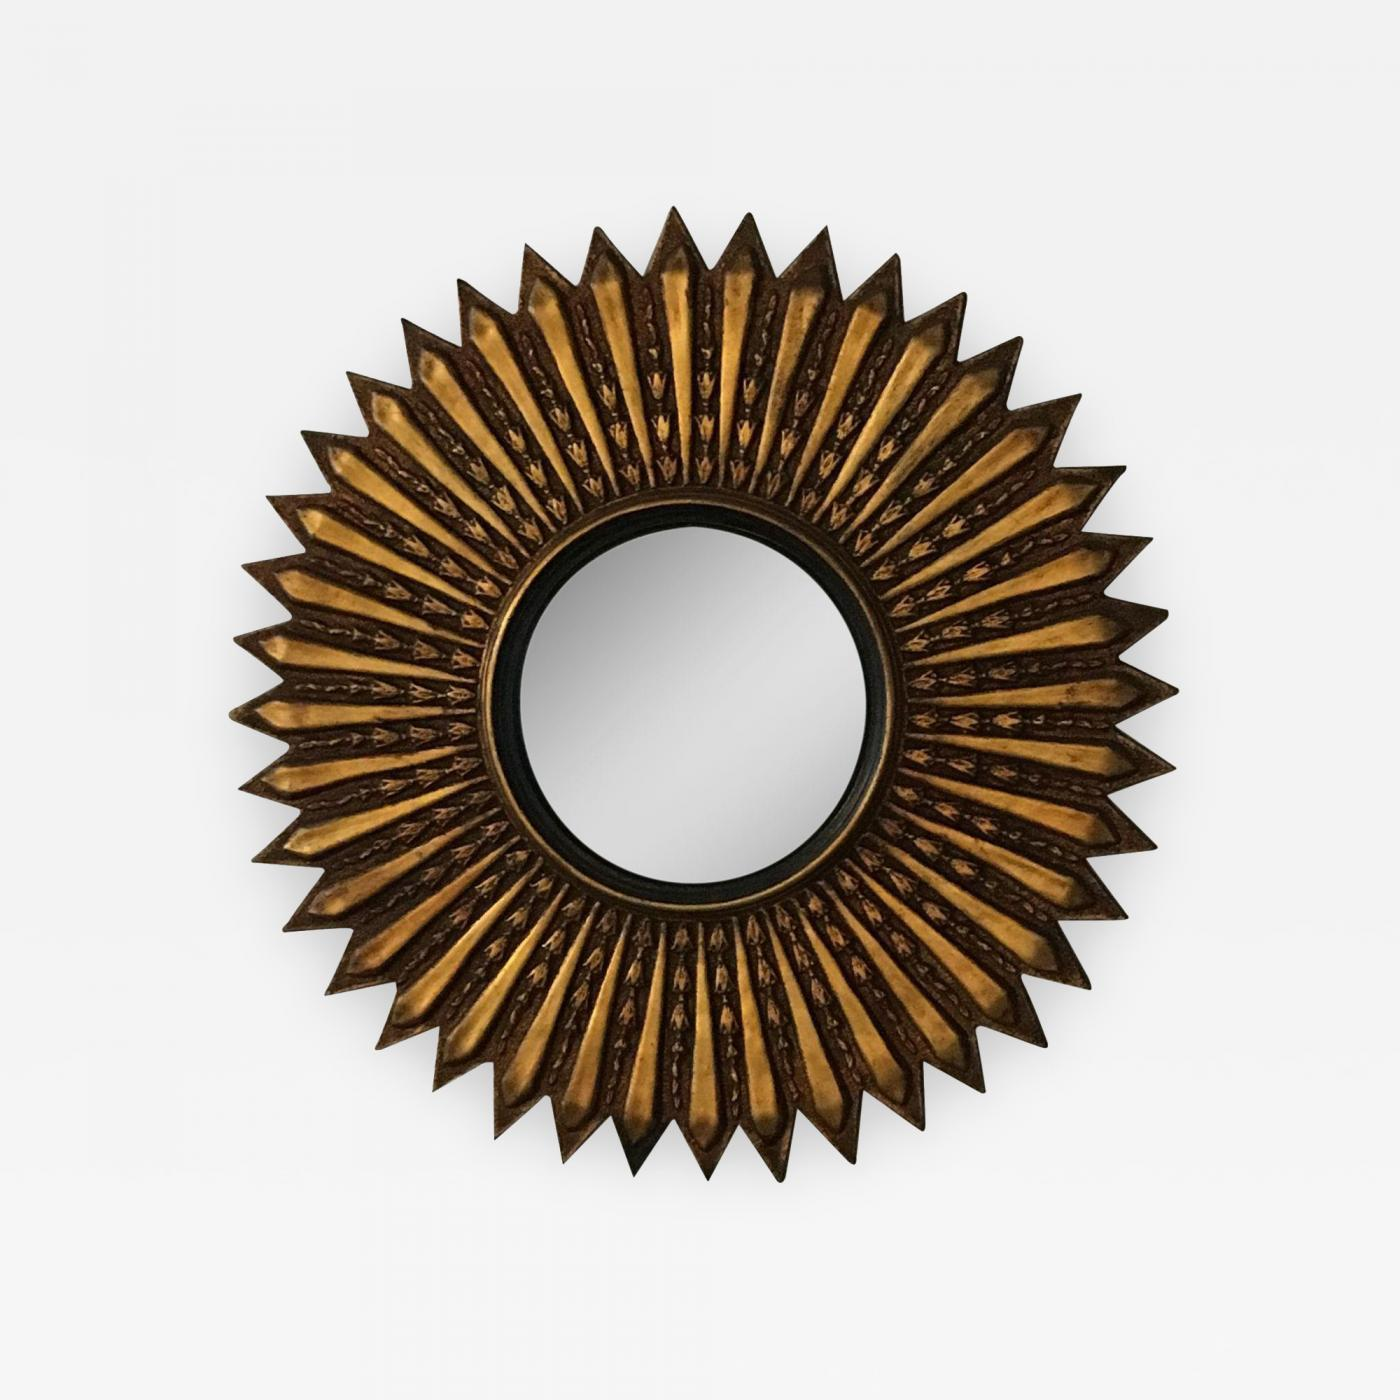 Mid century modern argentinian gilded wood starburst convex mirror listings decorative arts mirrors wall mirrors amipublicfo Gallery